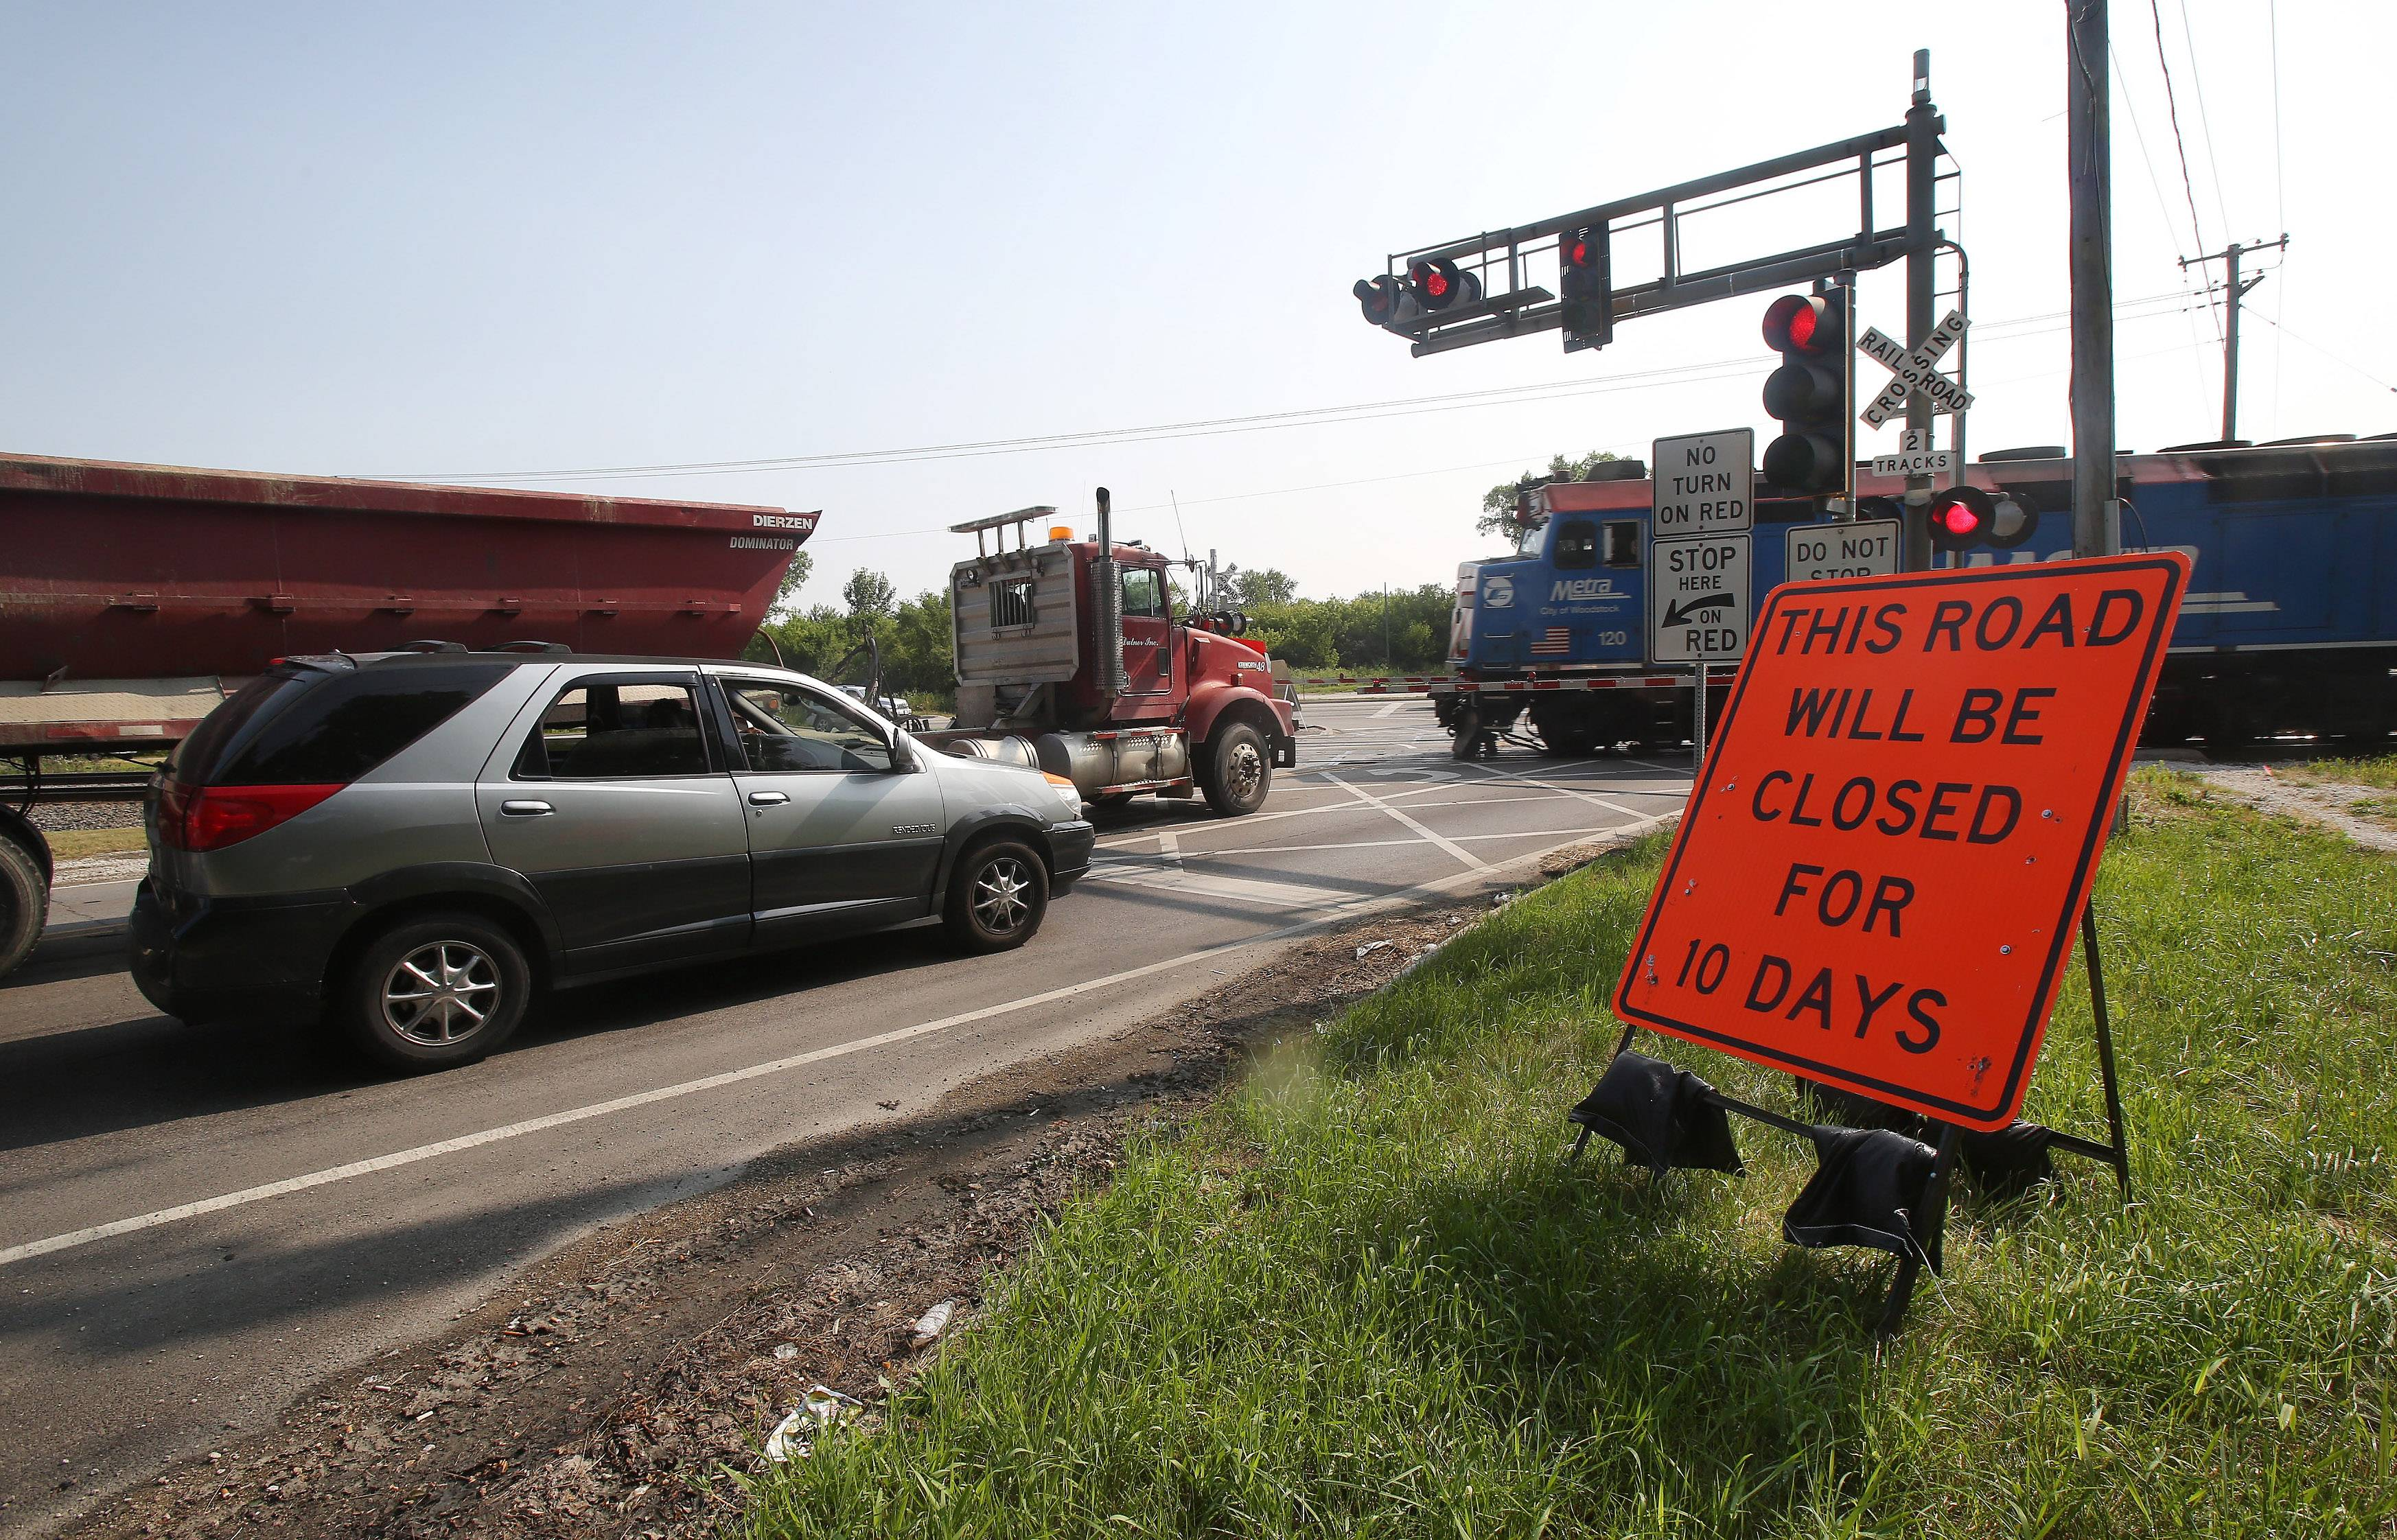 Route 120 to close for 10 days in Grayslake